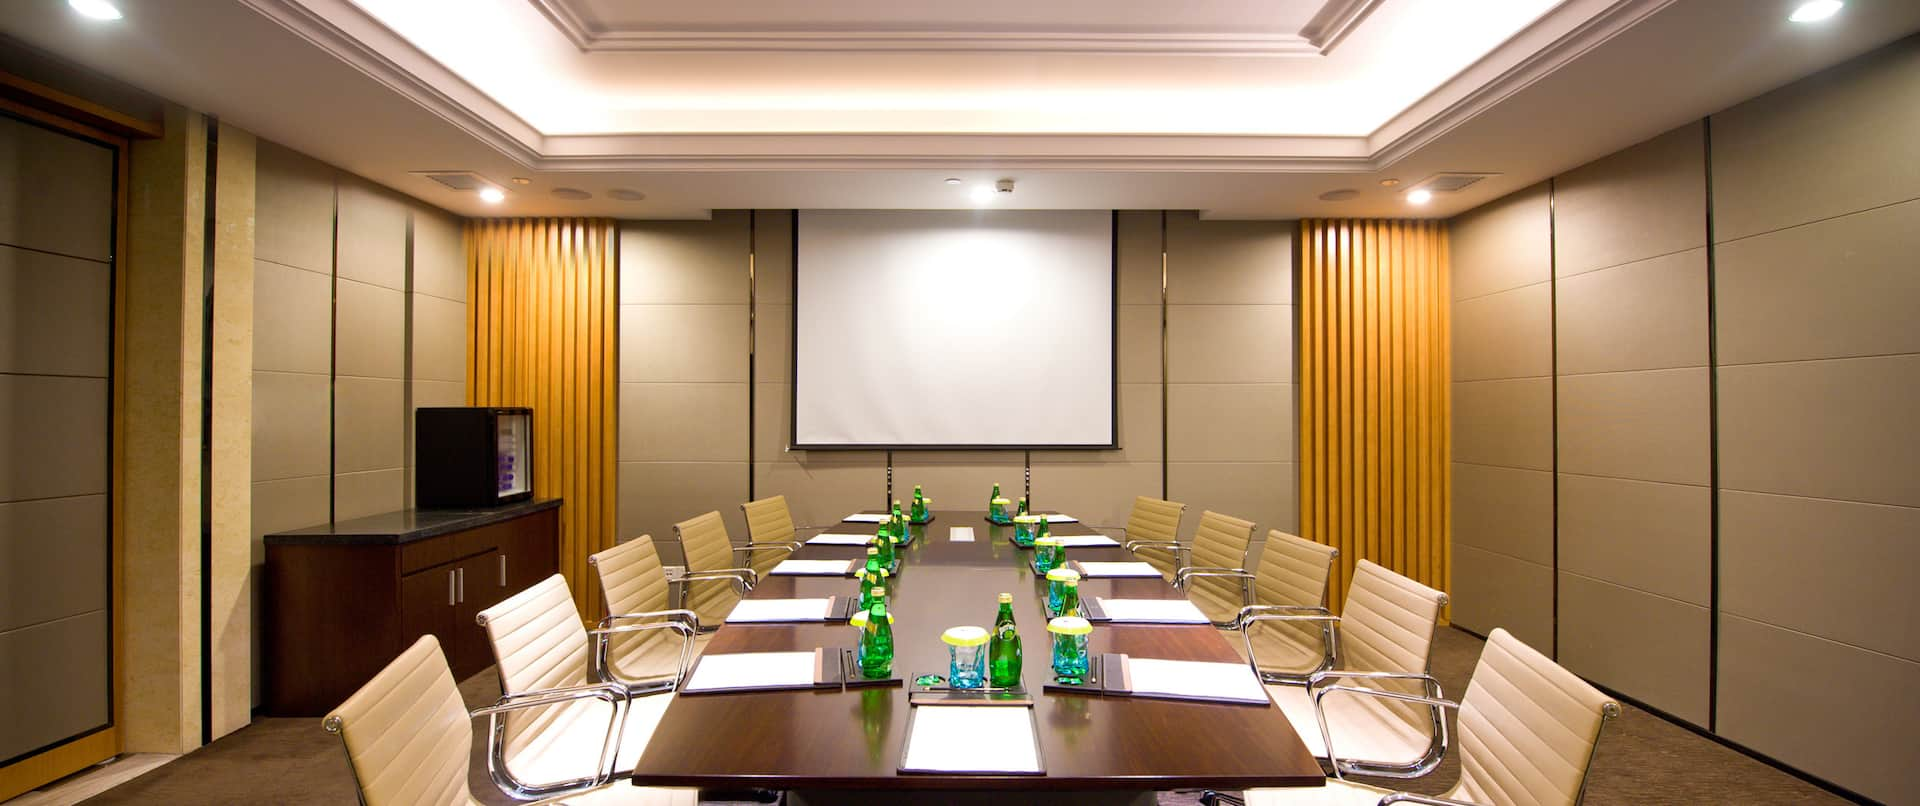 Meeting Room - Boardroom